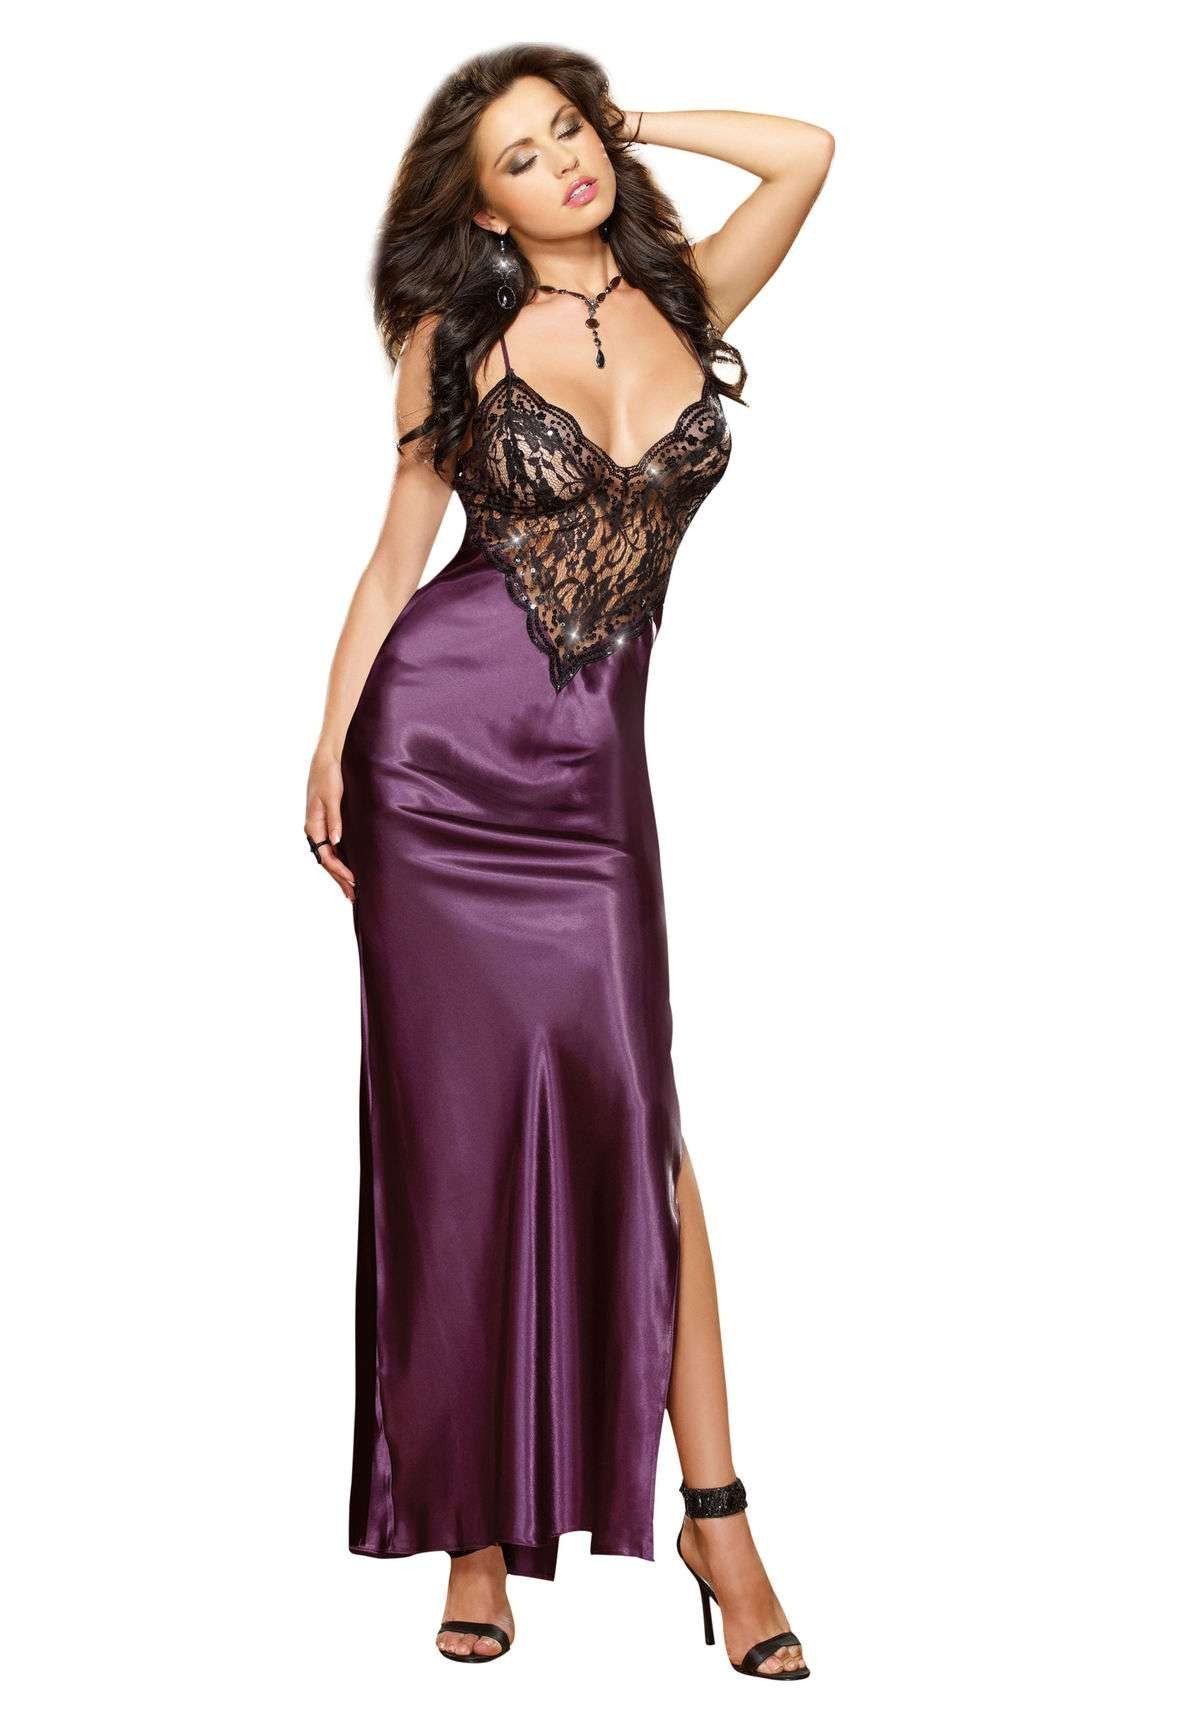 Dreamgirl Satin Charmeuse Lace Sequin Gown lingerie dress | Lounjere ...